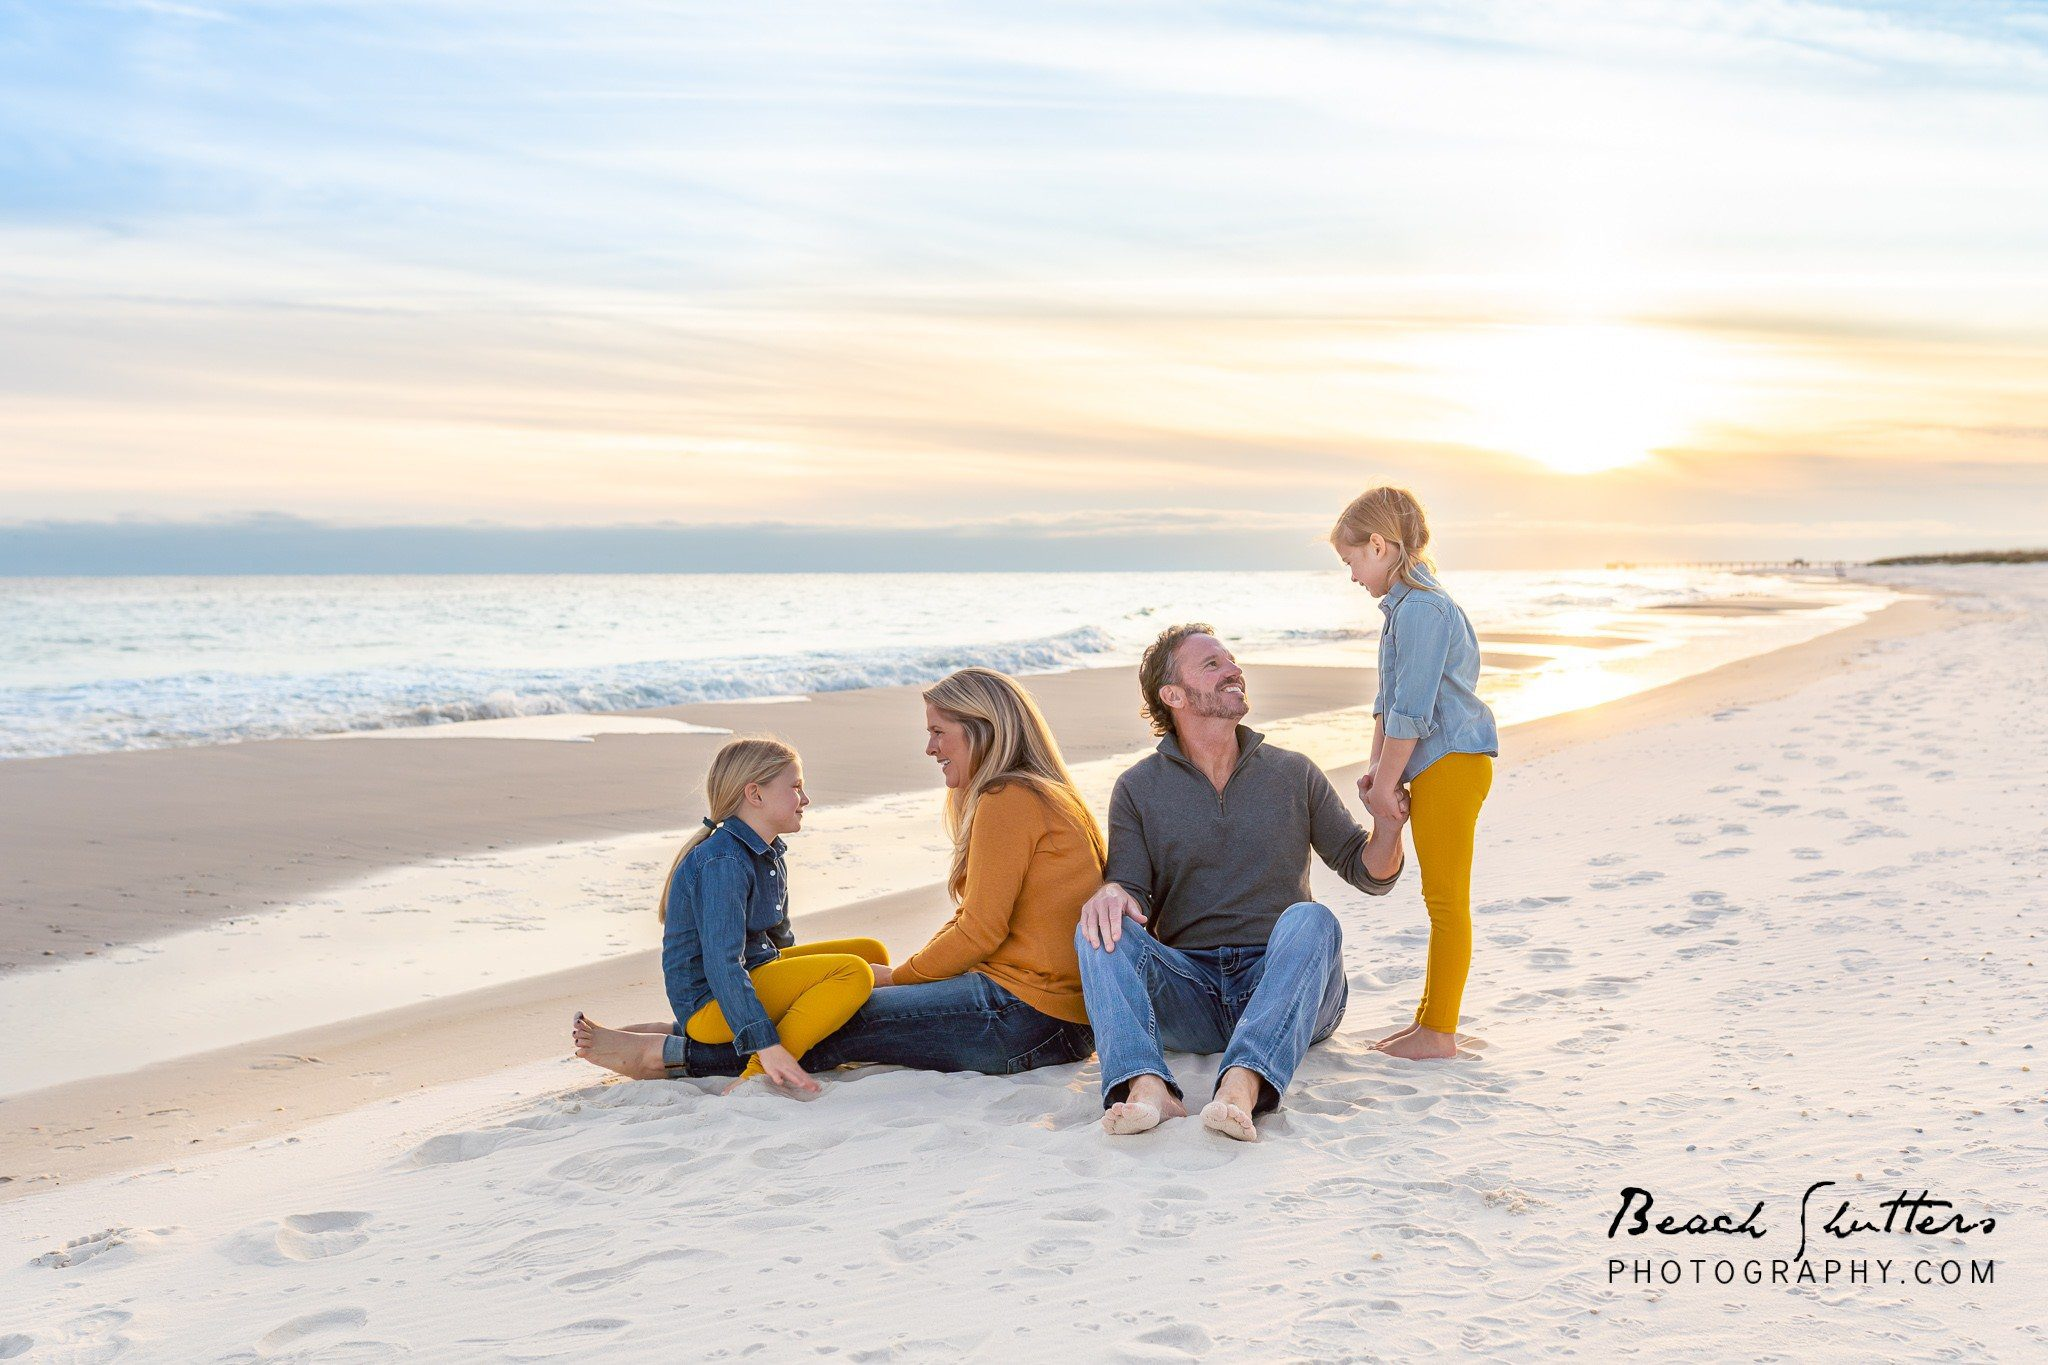 Beach Shutters photography loves fall at the beach in Alabama